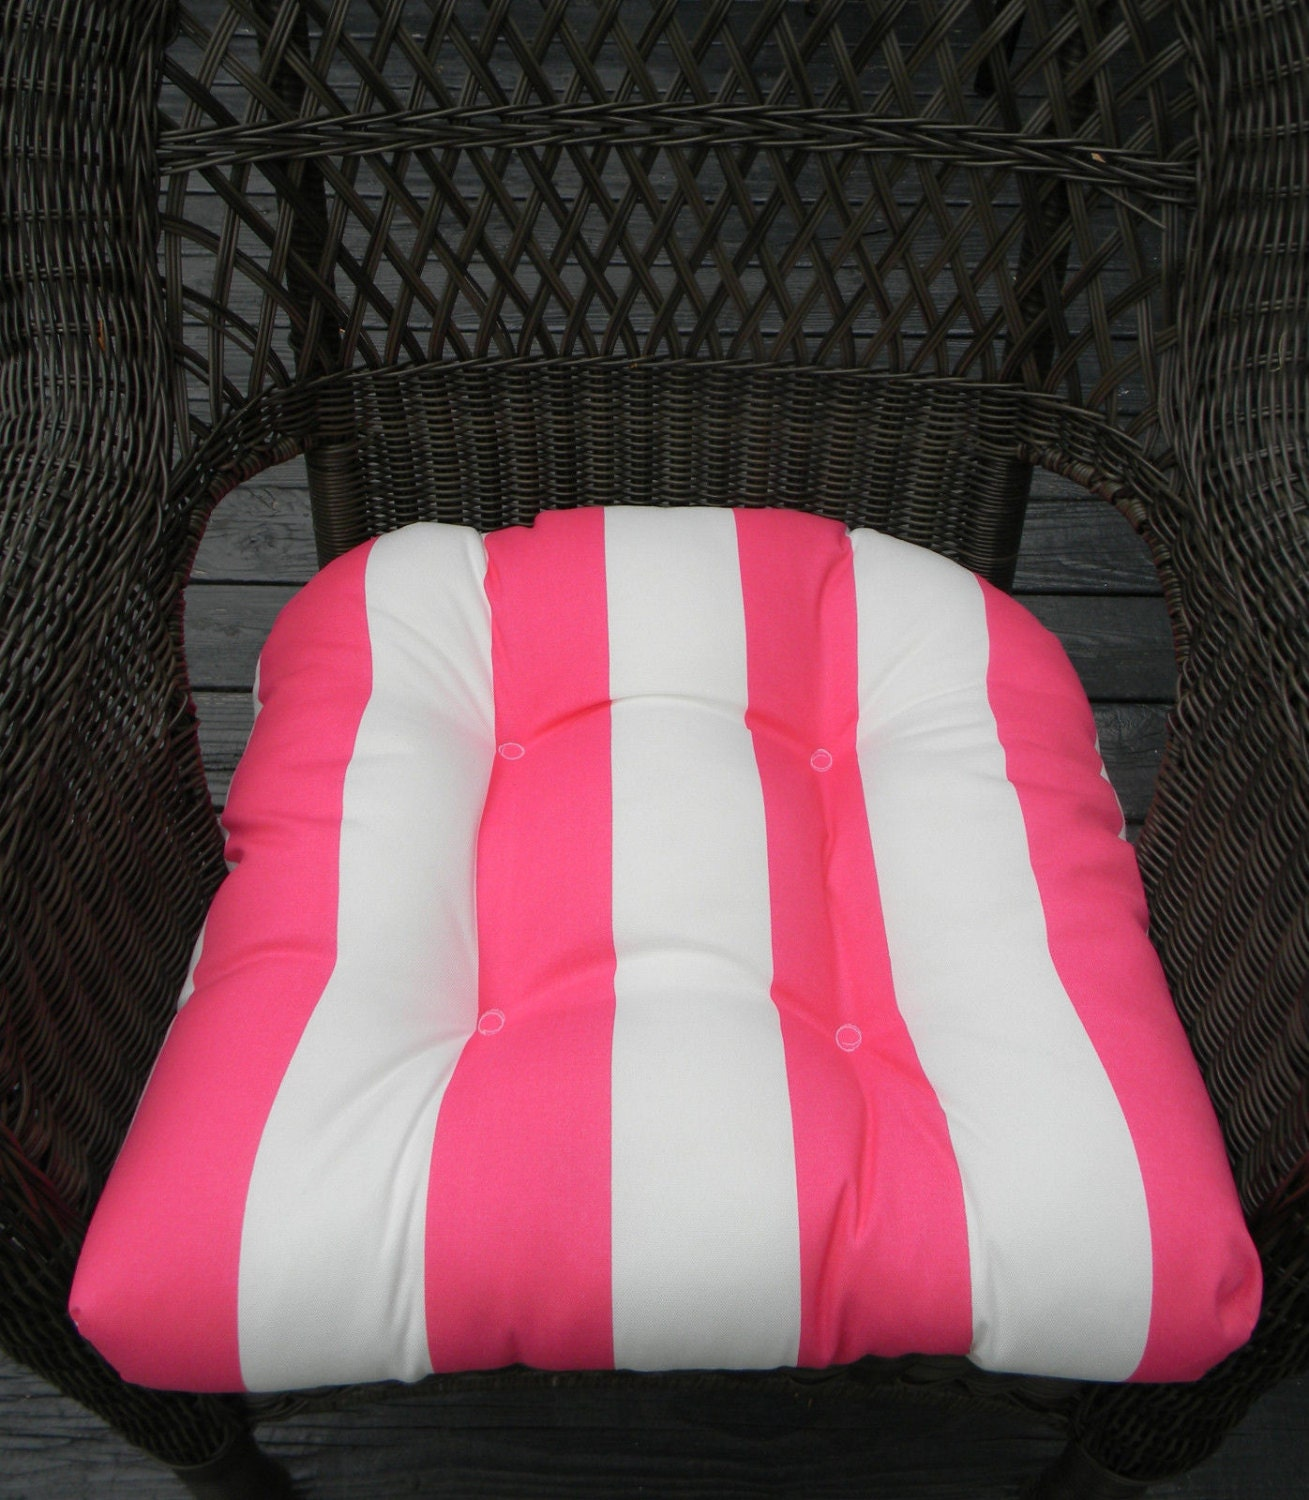 indoor outdoor universal wicker chair cushion pink and